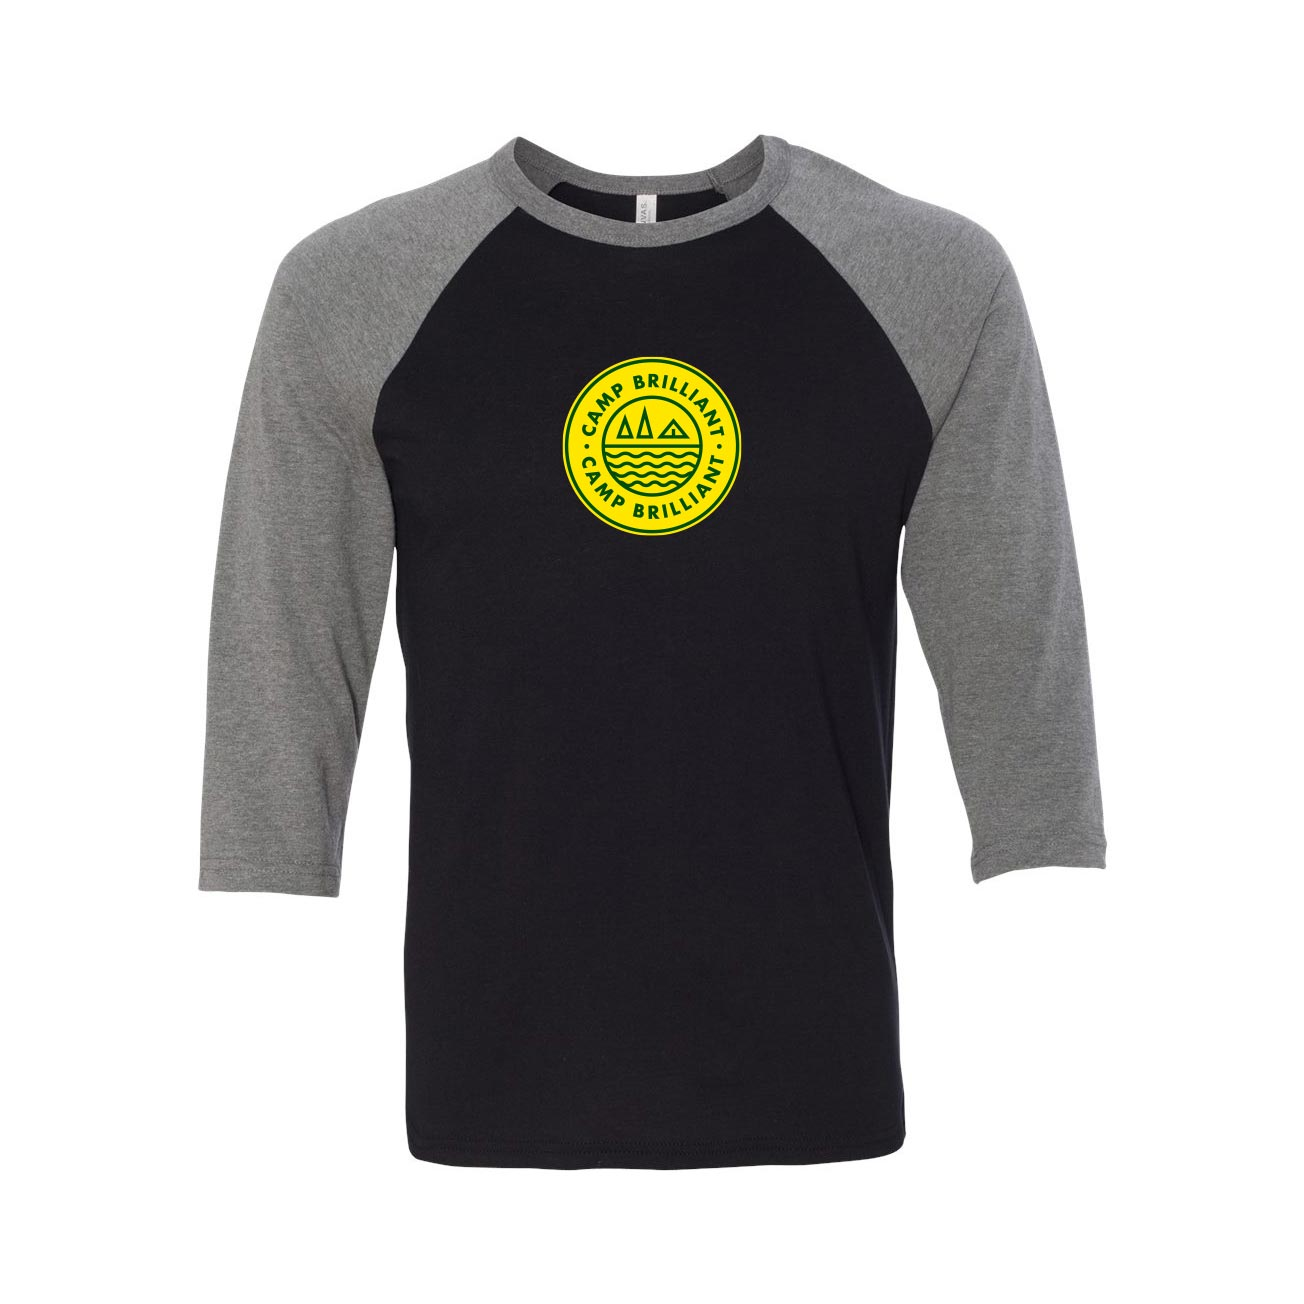 229167 unisex baseball t shirt one color one location imprint